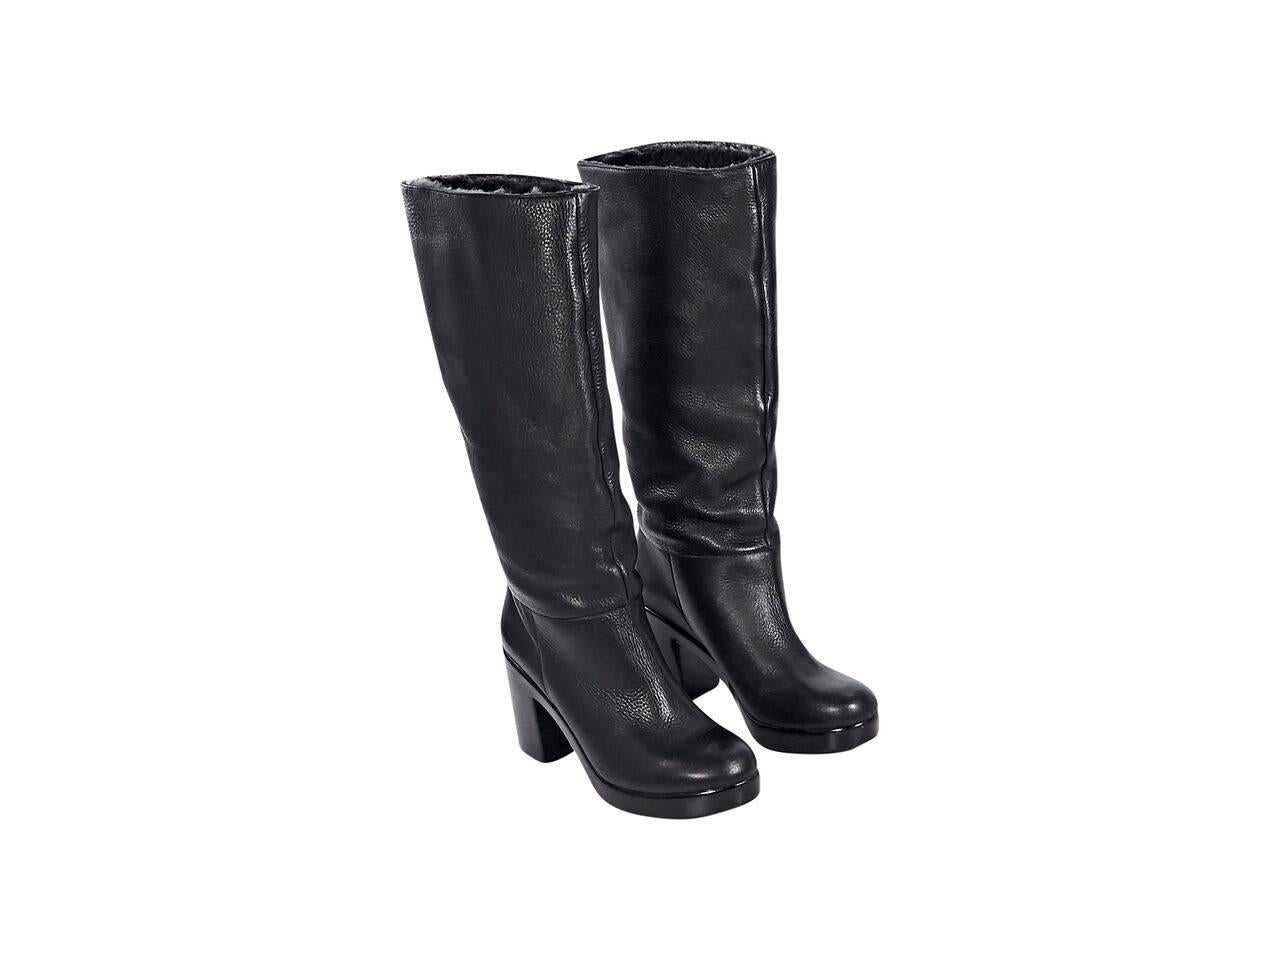 Black Robert Clergerie Shearling Lined Knee High Boots For